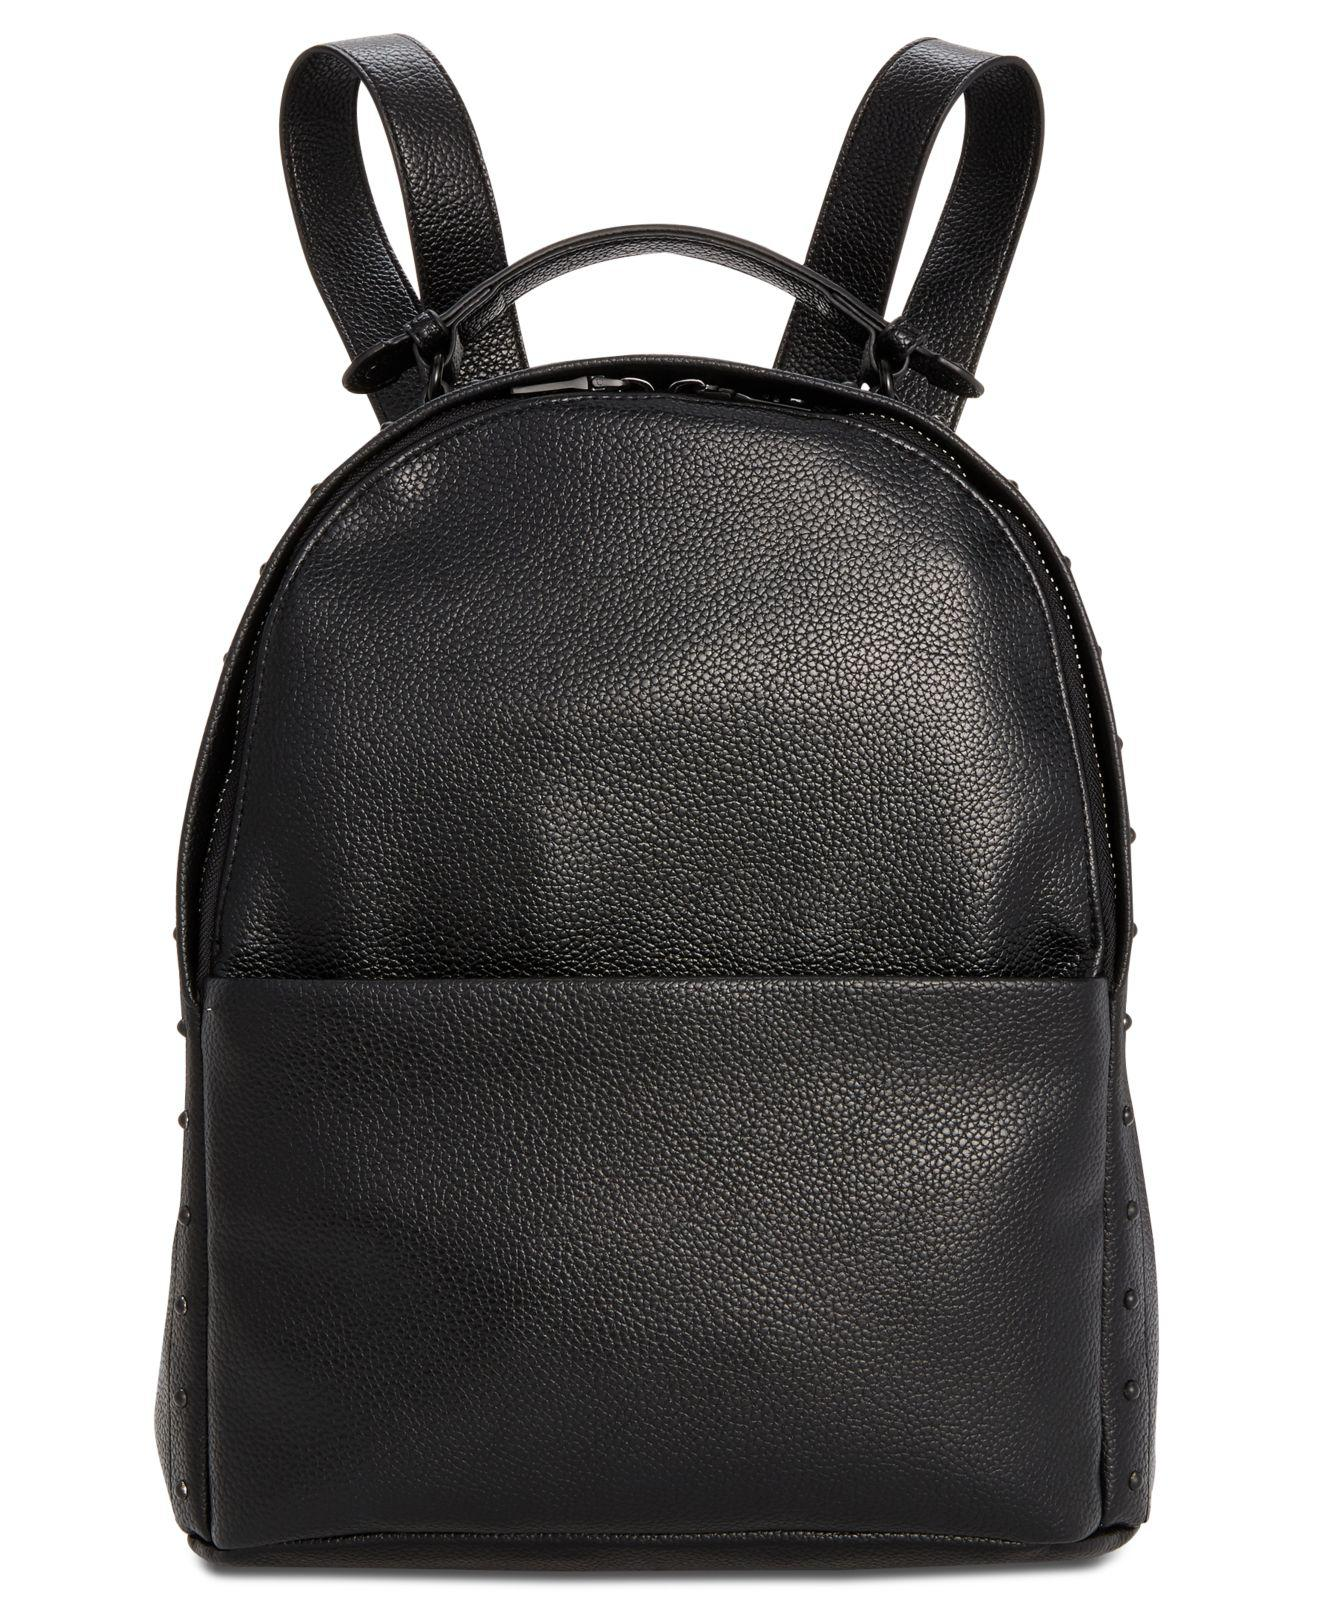 5cea918761 Steve Madden Lennie Pebble Backpack in Black - Lyst